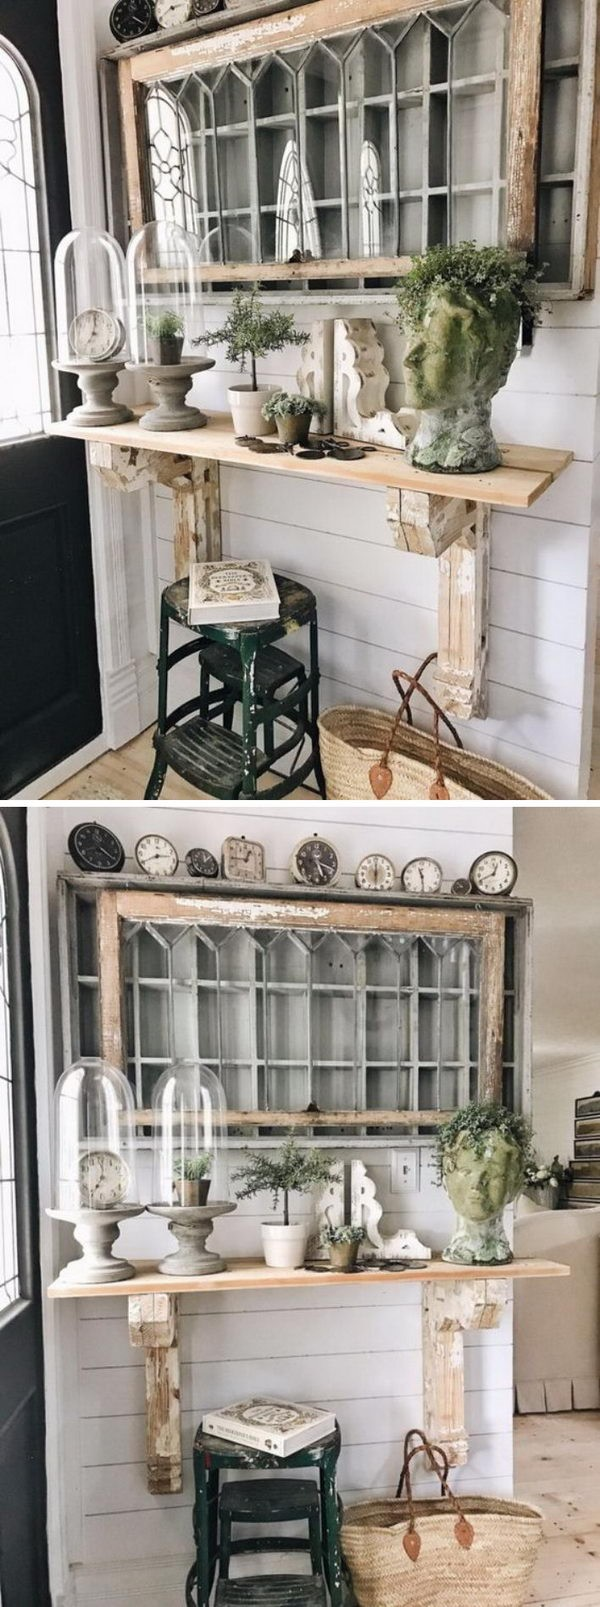 16 easy and creative diy corbels home decor projects the - What is farmhouse style ...